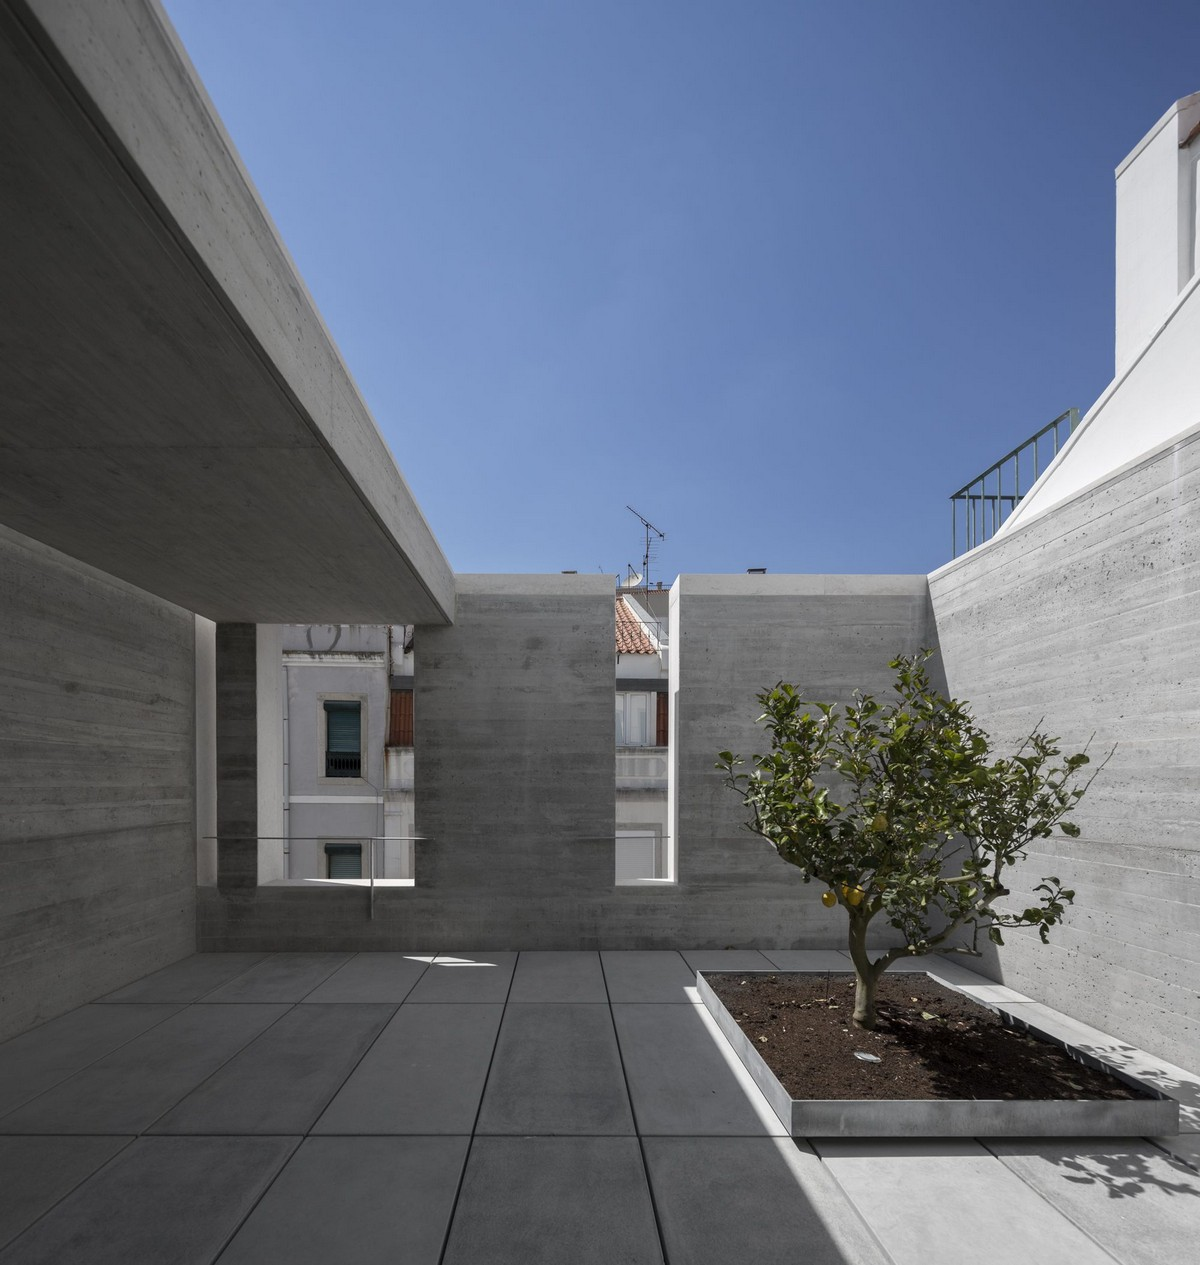 Discover The Minimalistic Architecture Of This Lisbon House minimalistic architecture Discover The Minimalistic Architecture Of This Lisbon House Discover The Minimalistic Architecture Of This Lisbon House 5